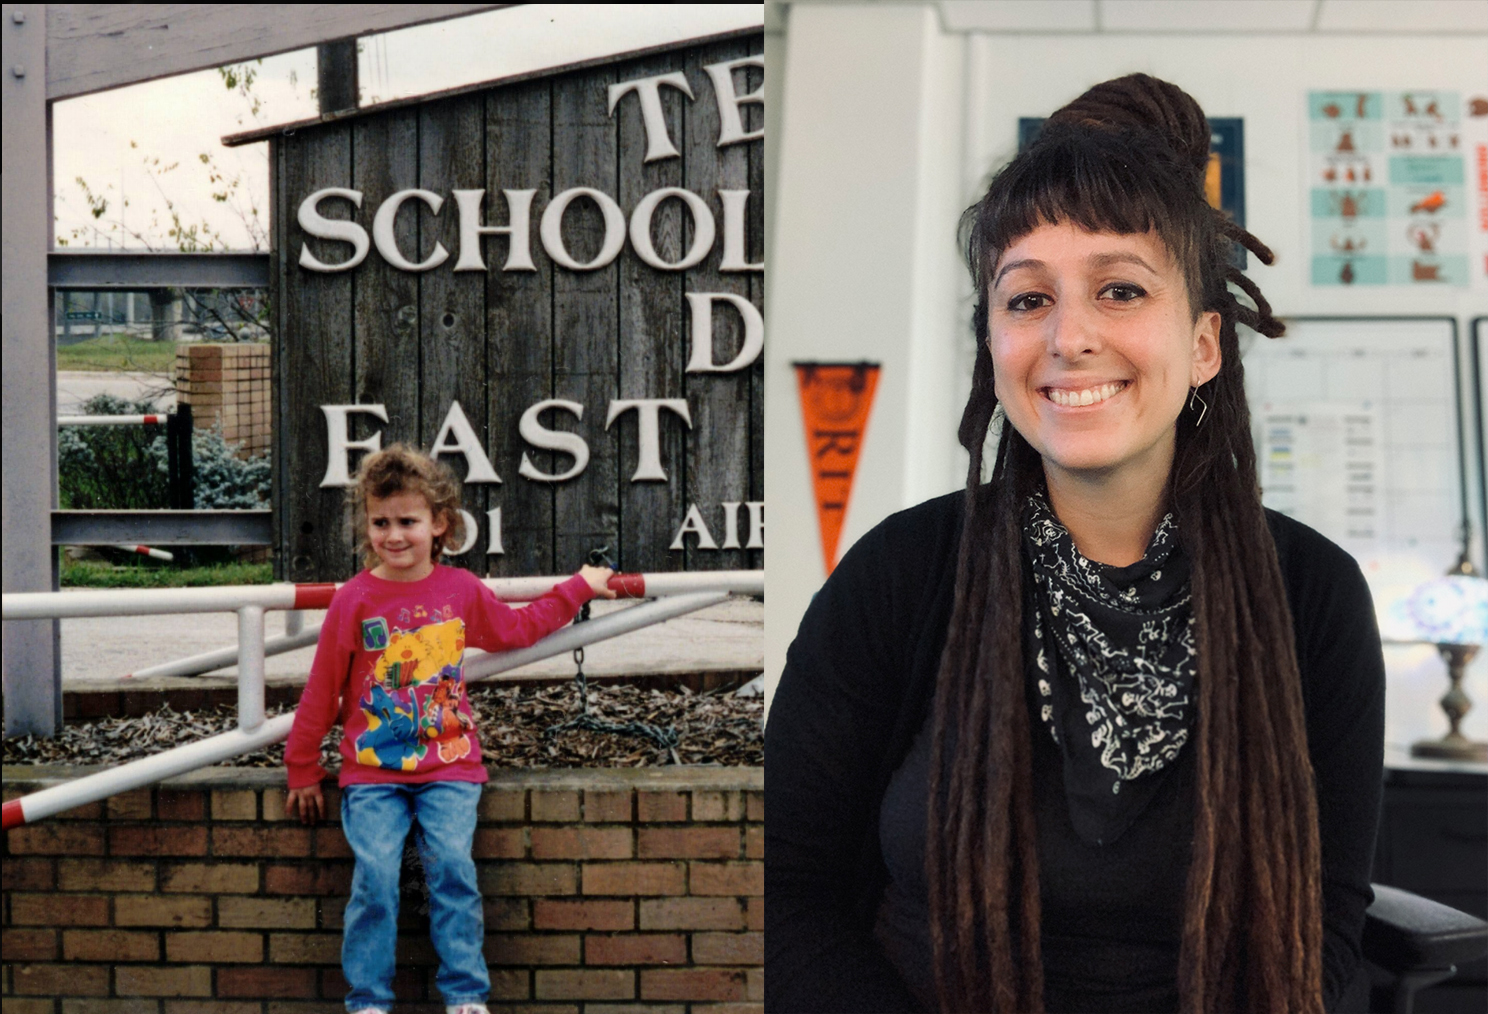 Side-by-side photos of Estefani Garrison are shown.  She is smiling in both photos,  the left showing her as a little girl and the right showing her in present time as an adult.  In the older picture, Stephanie is standing in front of a sign that is partially visible, but it is clear that she is standing at the entrance to TSD's East Campus.  In her present-day photo, she is a classroom in CTE where she now teaches.